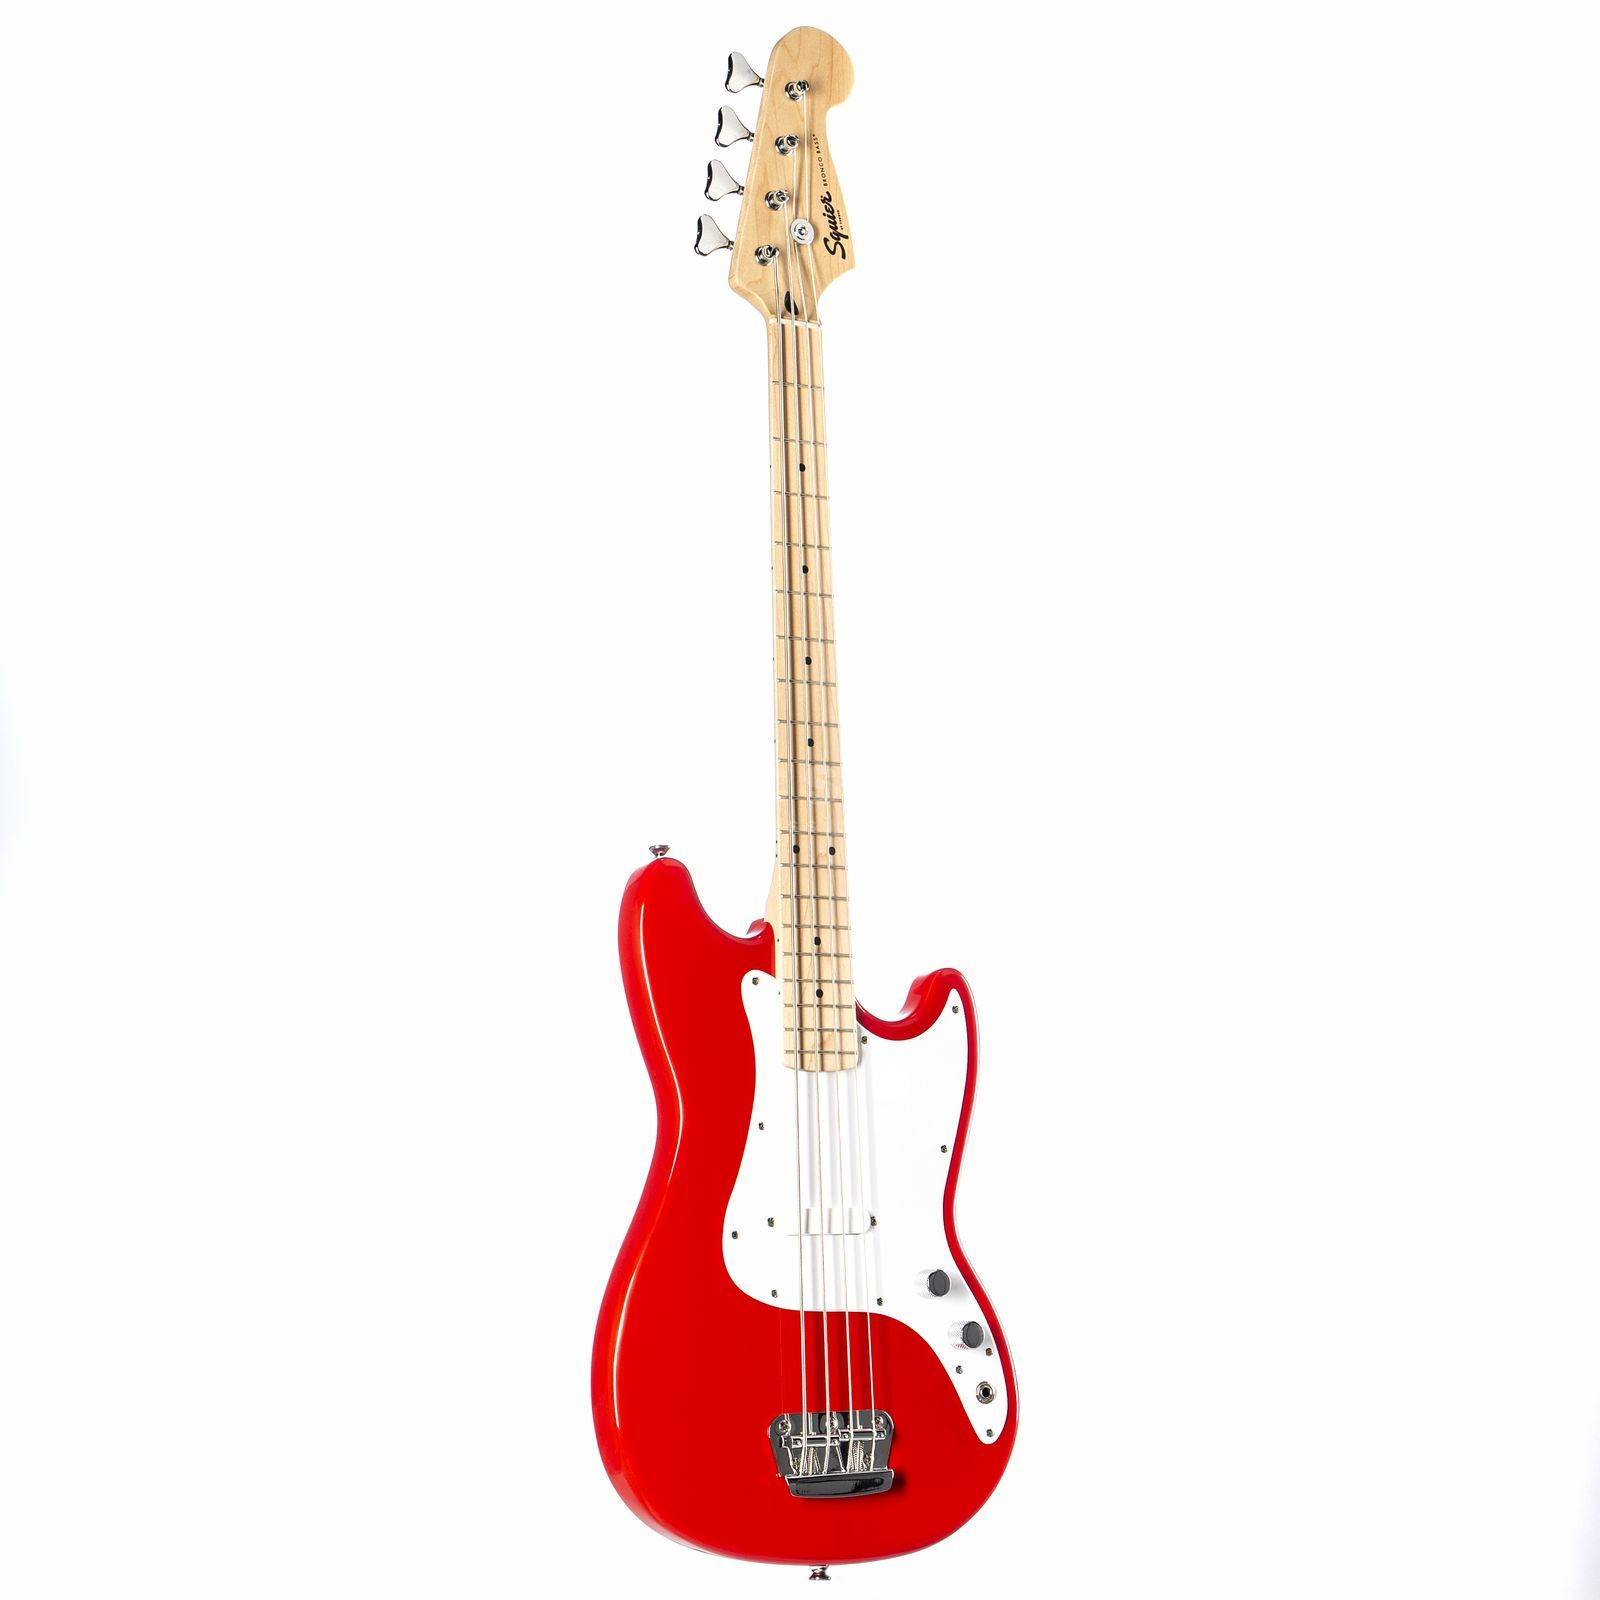 Fender Squier Affinity Bronco Bass MN TRD Torino Red  Imagen del producto